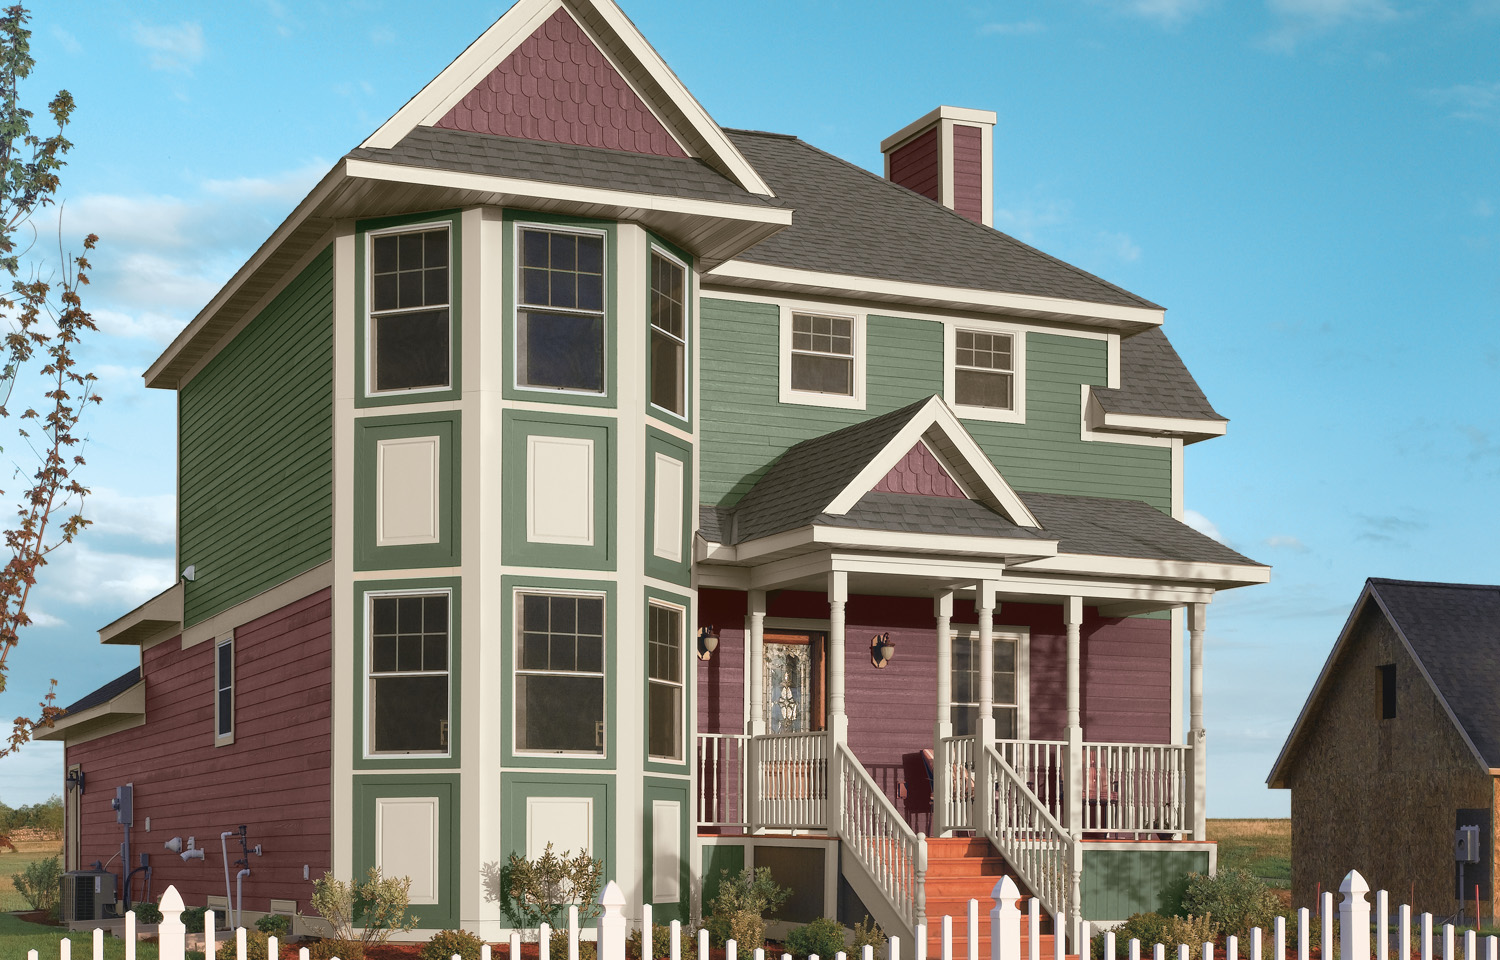 One Of The More Unexpected Trending Exterior House Colors 2019 Consists A Two Toned Combo Earth Tones Such As Green And Brown Are Gaining In